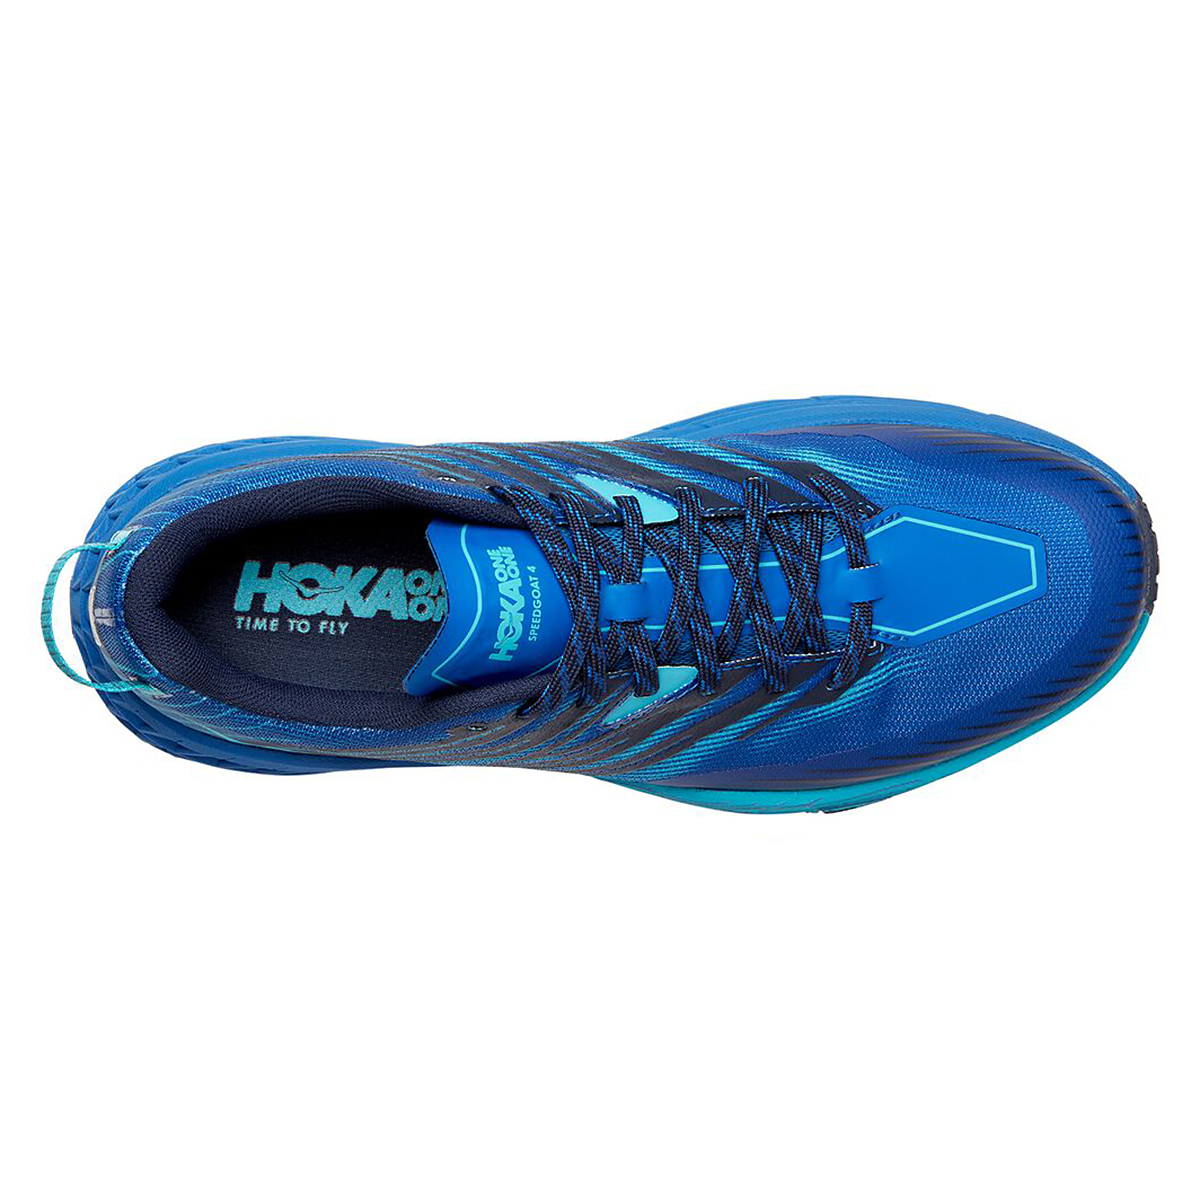 Men's Hoka One One Speedgoat 4 Trail Running Shoe, , large, image 3